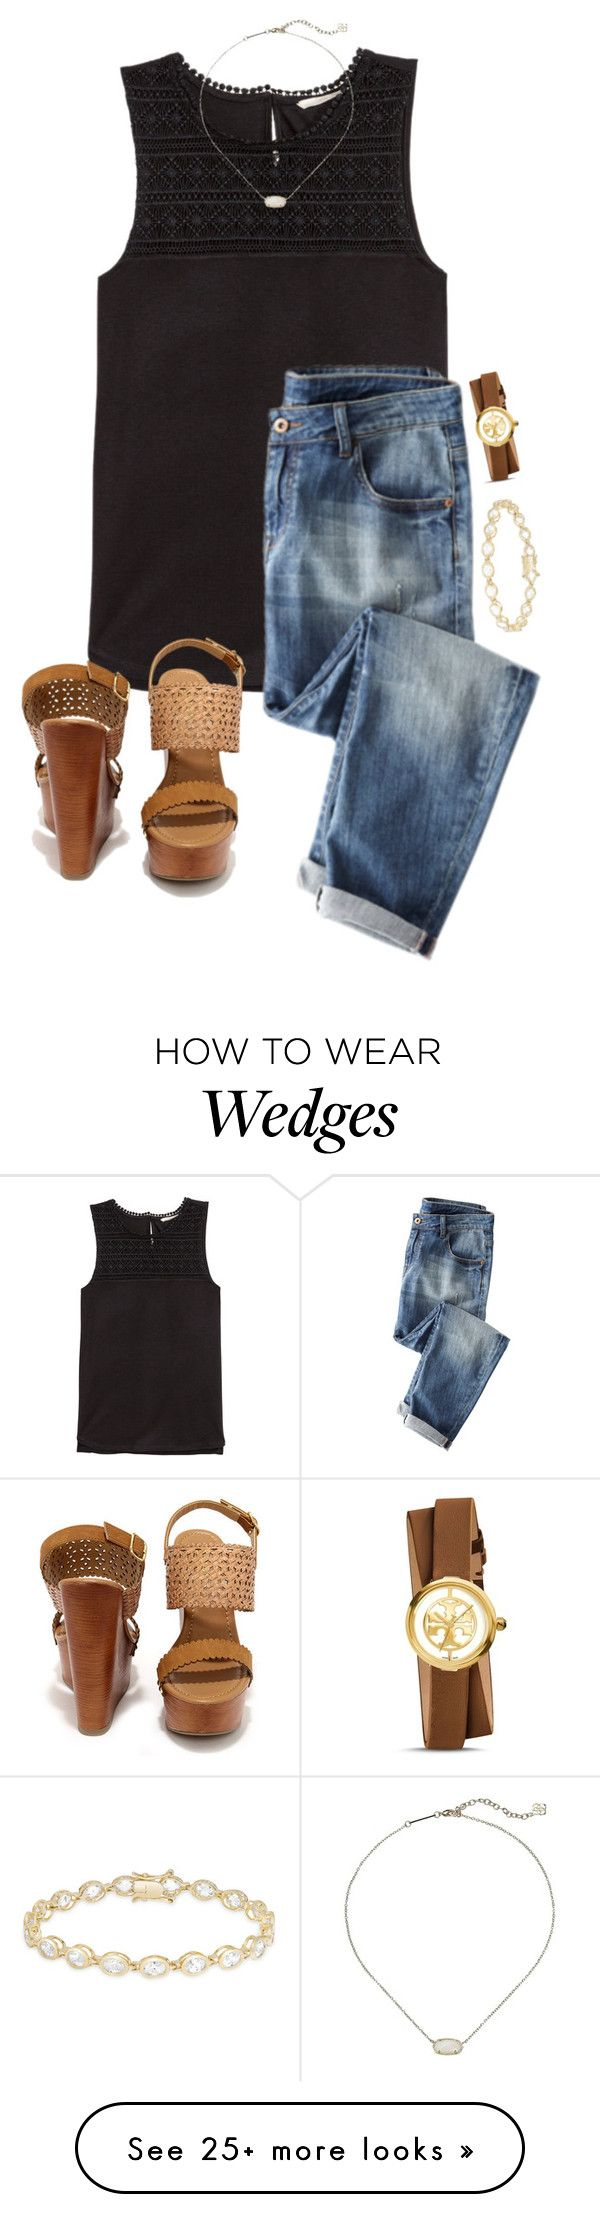 """Untitled #484"" by lydia-hh on Polyvore featuring H&M, Dolce Giavonna, Soda, Tory Burch and Kendra Scott"